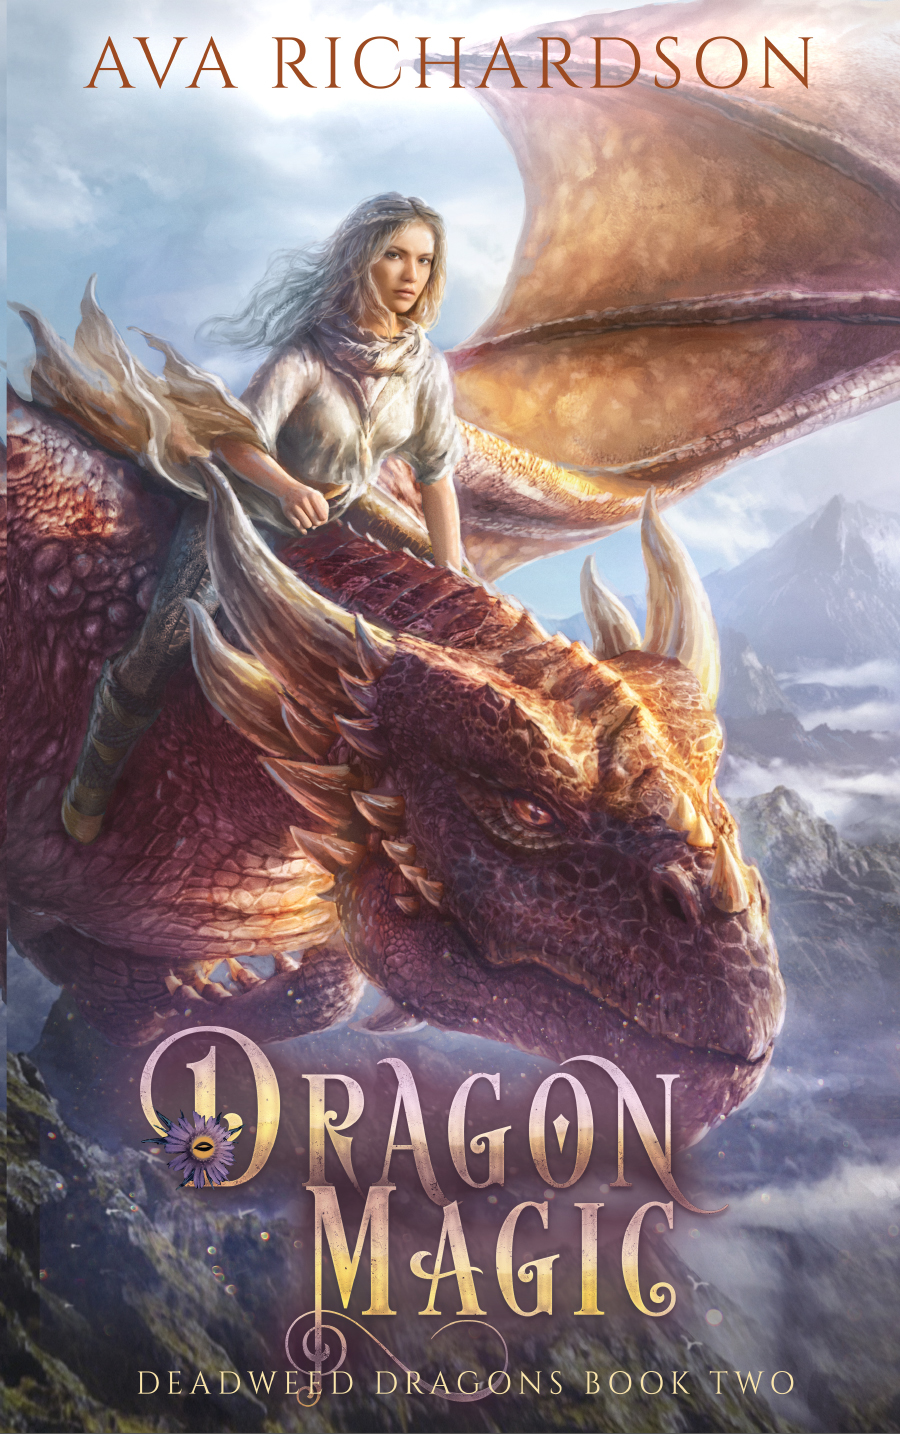 Deadweed Dragons Book 2